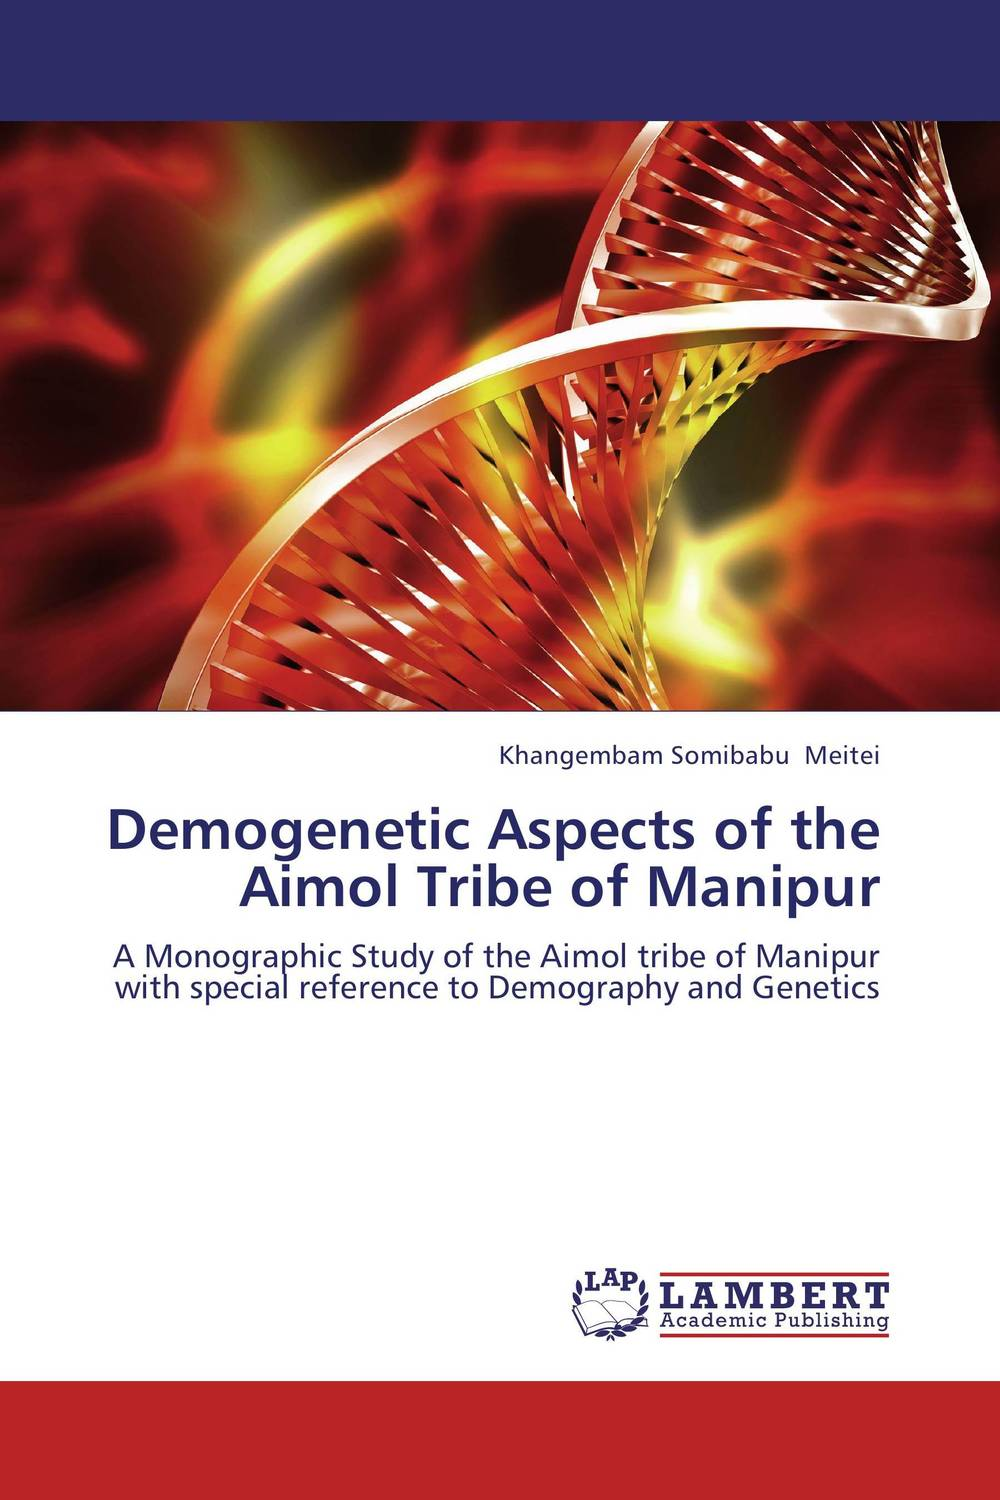 Demogenetic Aspects of the Aimol Tribe of Manipur multiple aspects of dna and rna from biophysics to bioinformatics session lxxxii